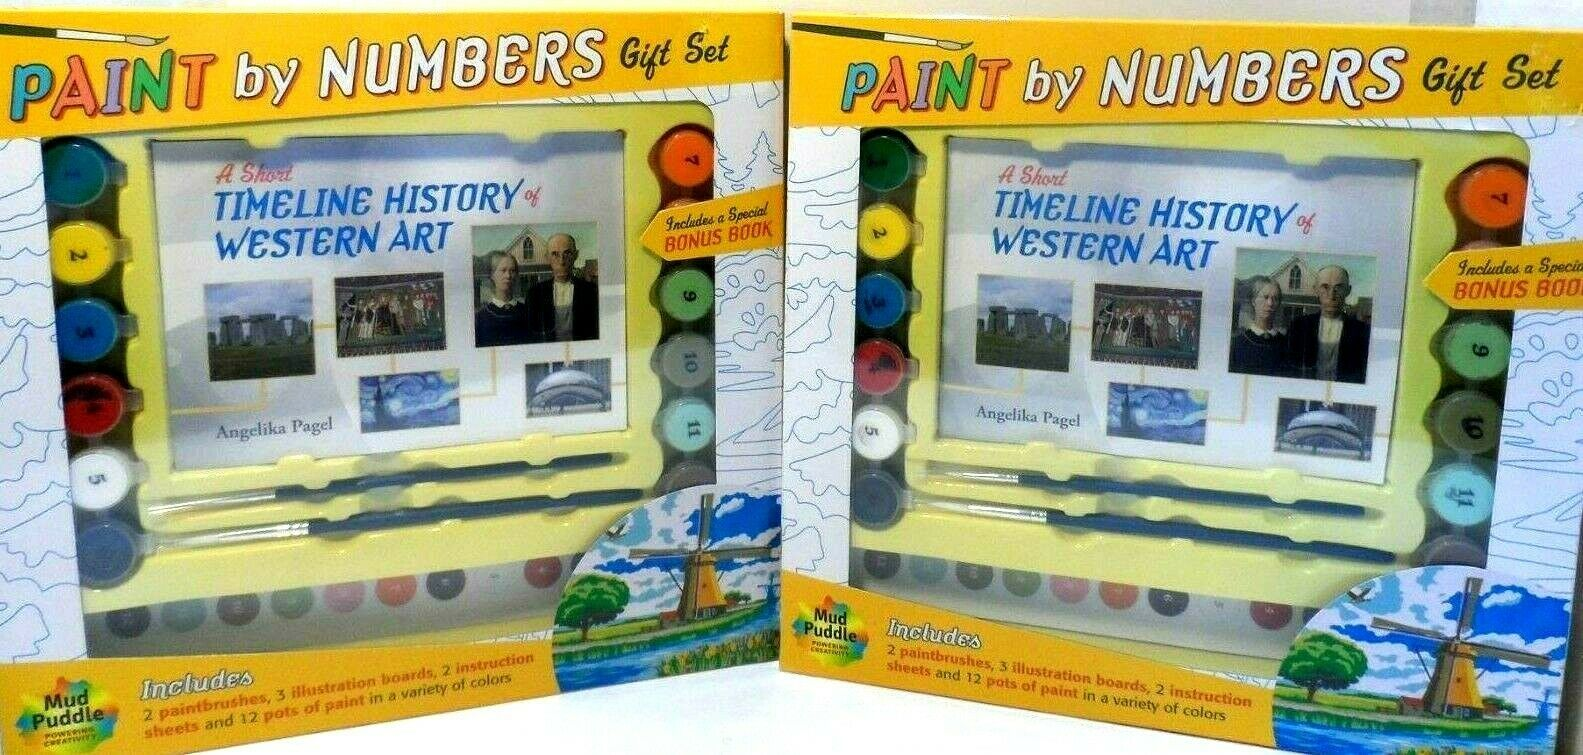 Primary image for Paint by Numbers Gift Set Timeline of Western Art by Mud Puddle Lot of 2 sets!